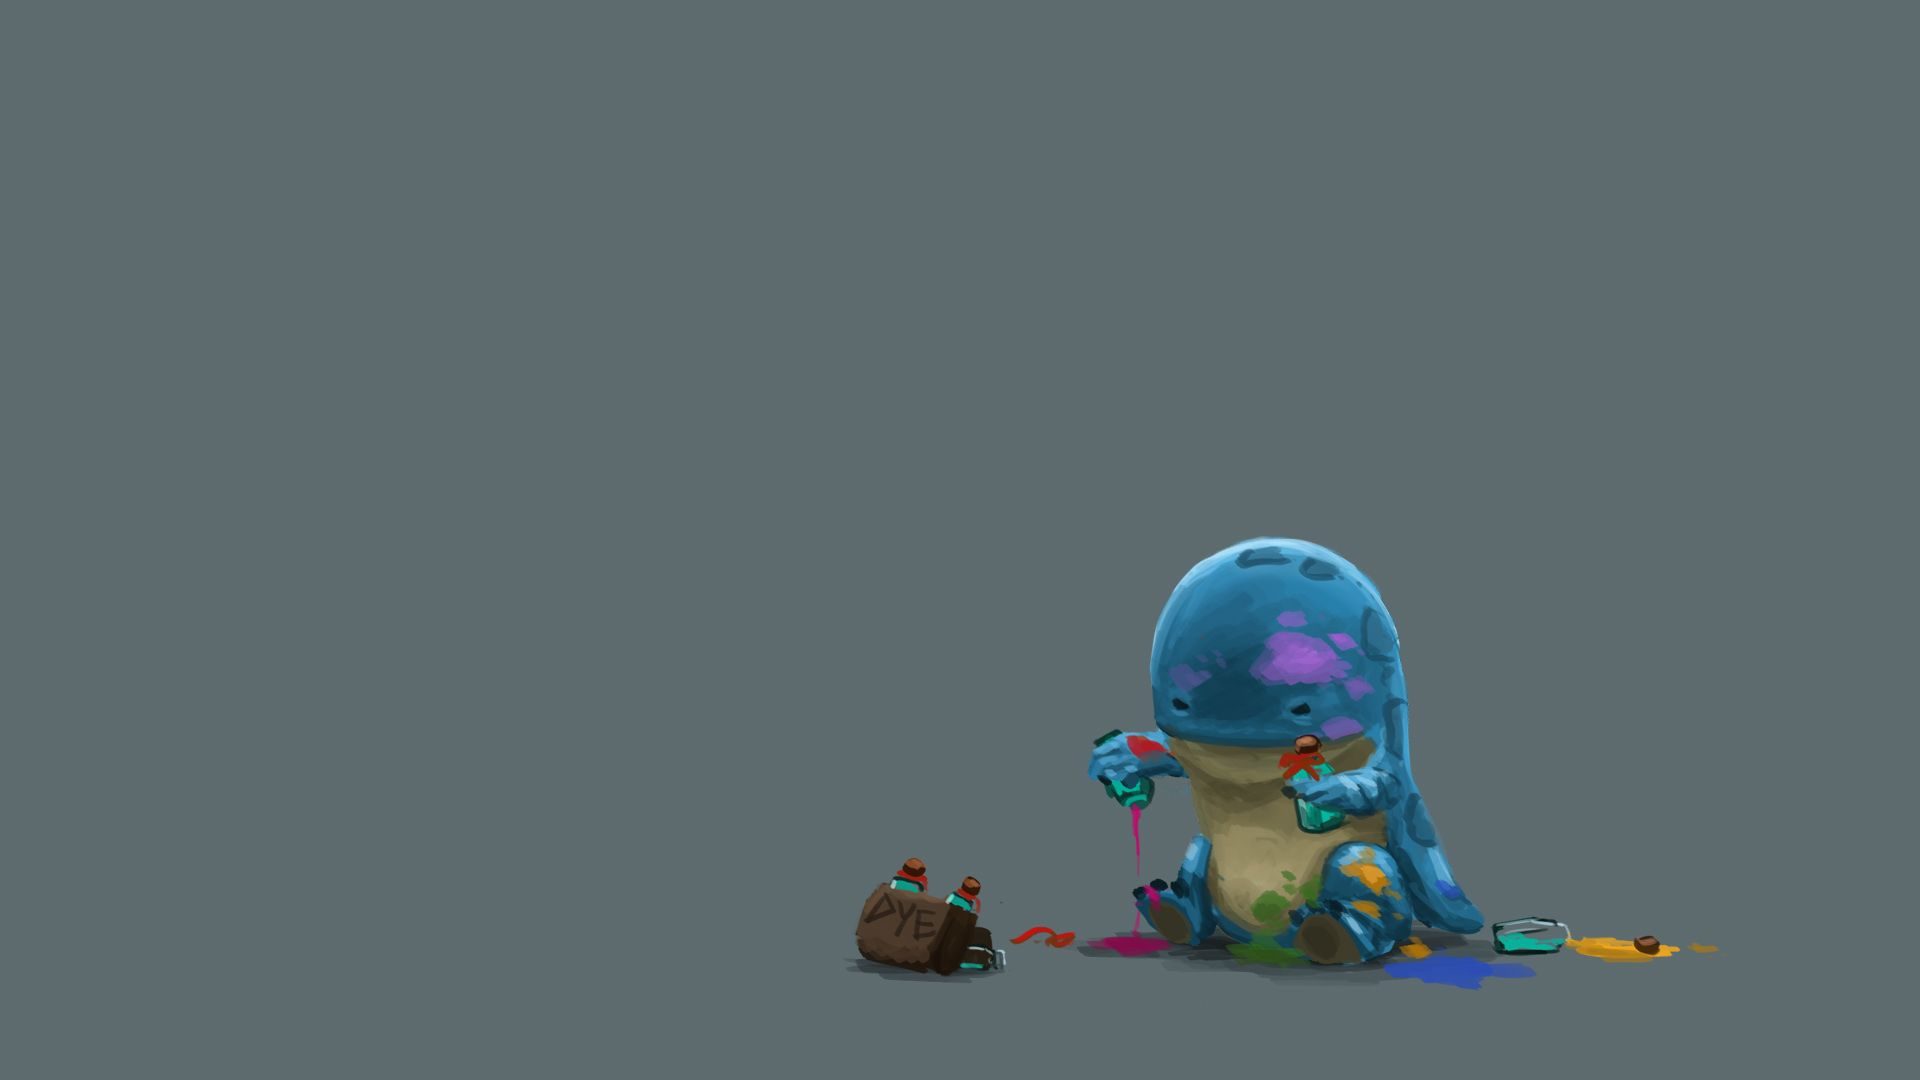 1920x1080 Free download issues cartoons wallpapers botting chests ...